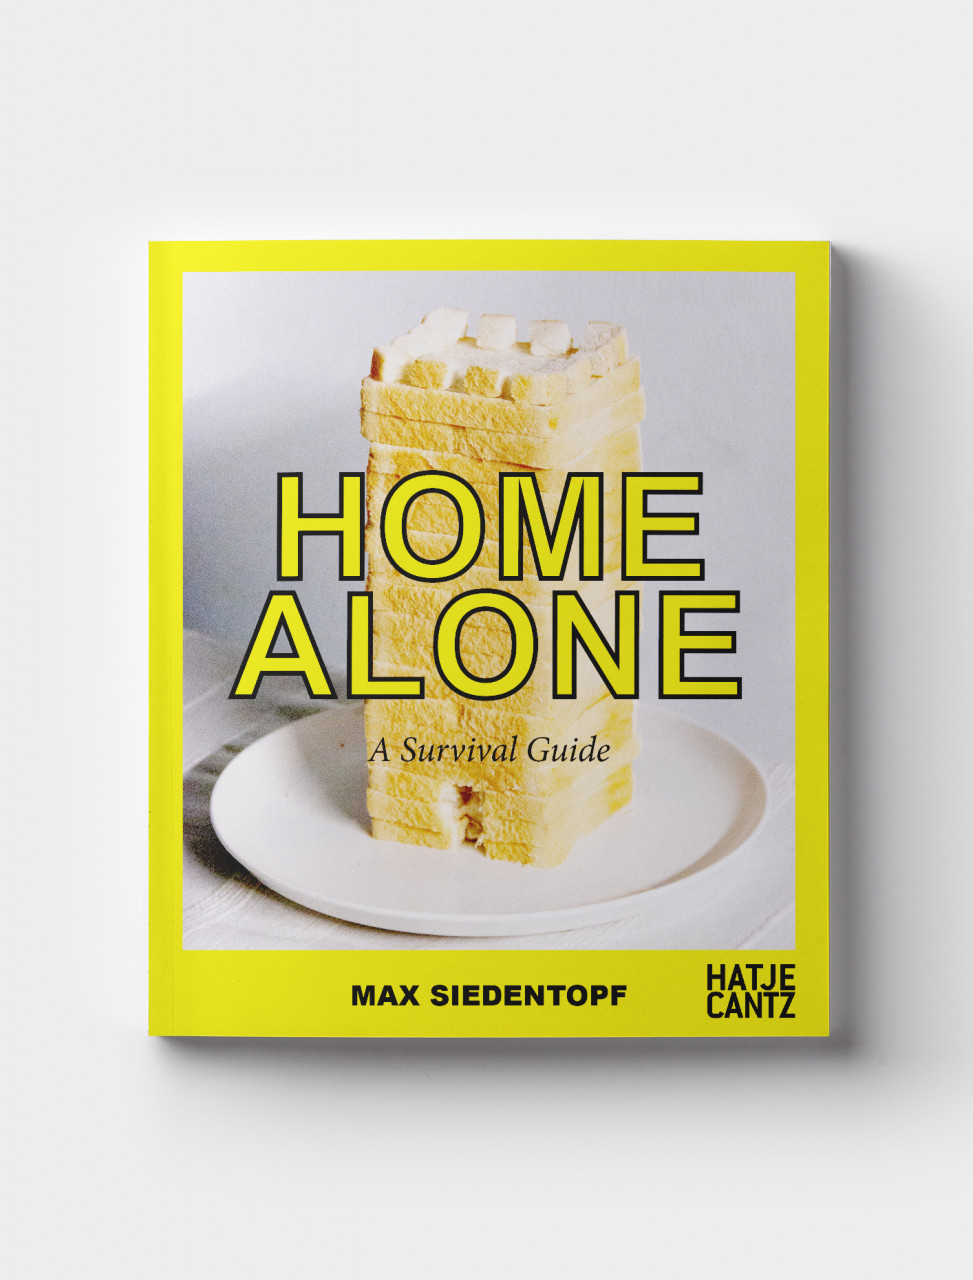 9783775747974 HOME ALONE MAX SIEDENTOPF